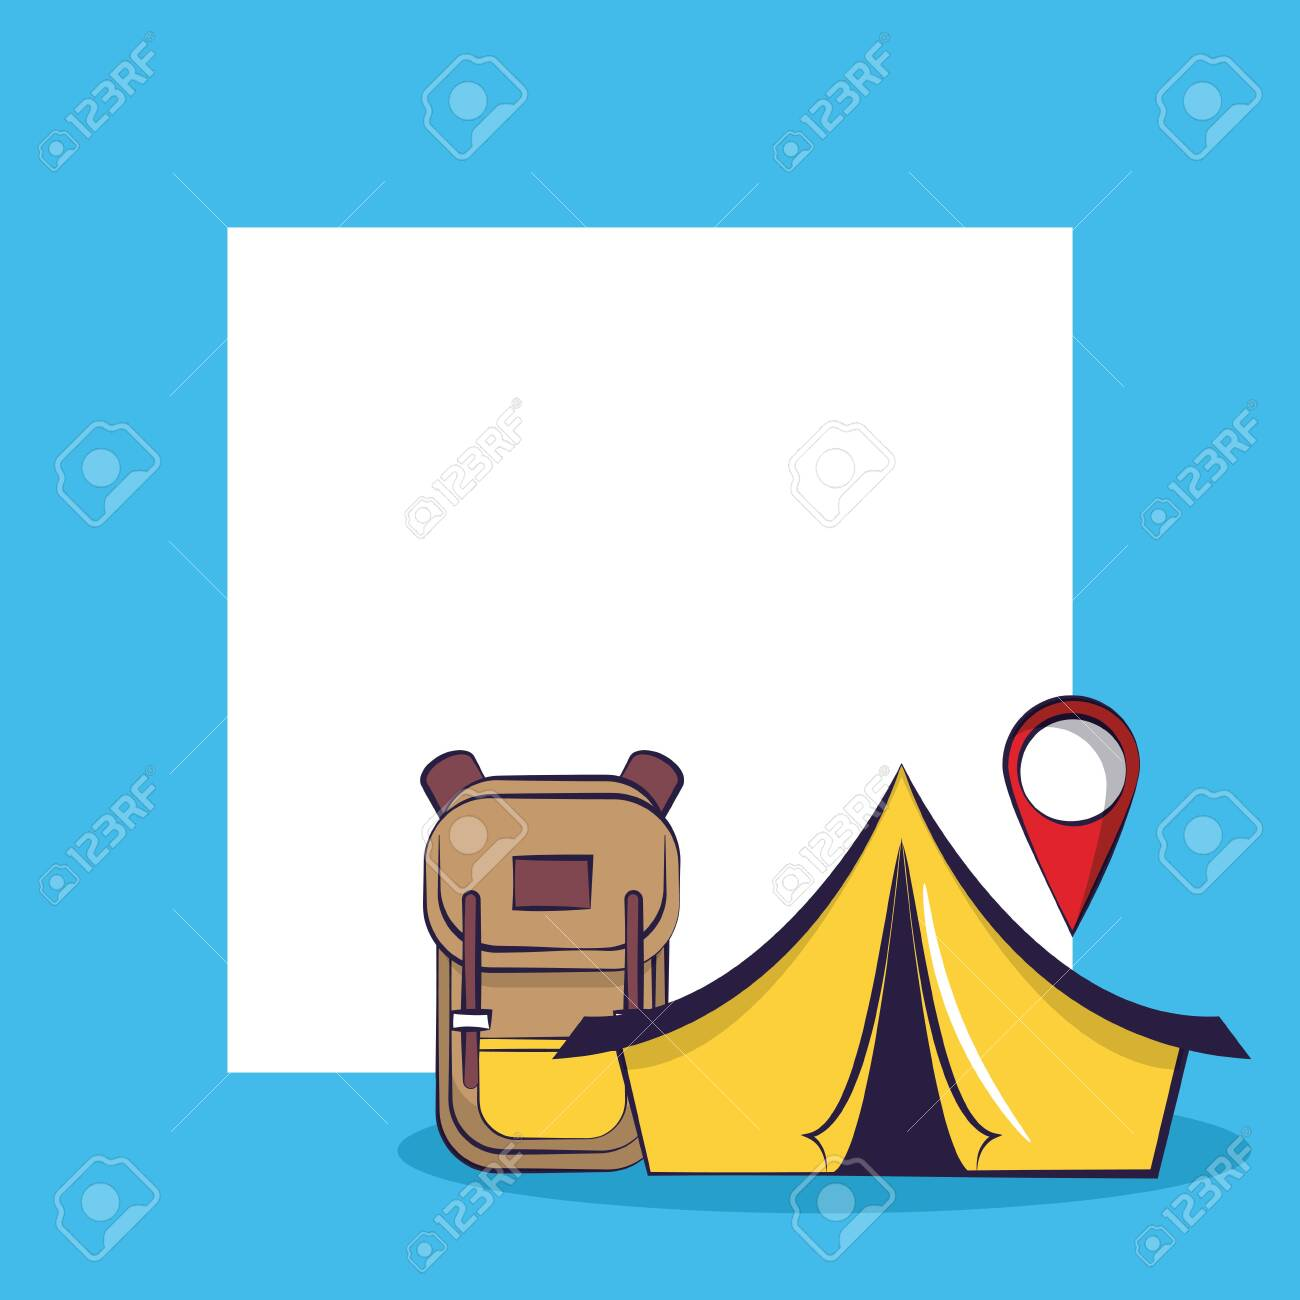 Traveling Tourism Exciting Trip Location Sign Camping Tent Backpack Royalty Free Cliparts Vectors And Stock Illustration Image 122790513